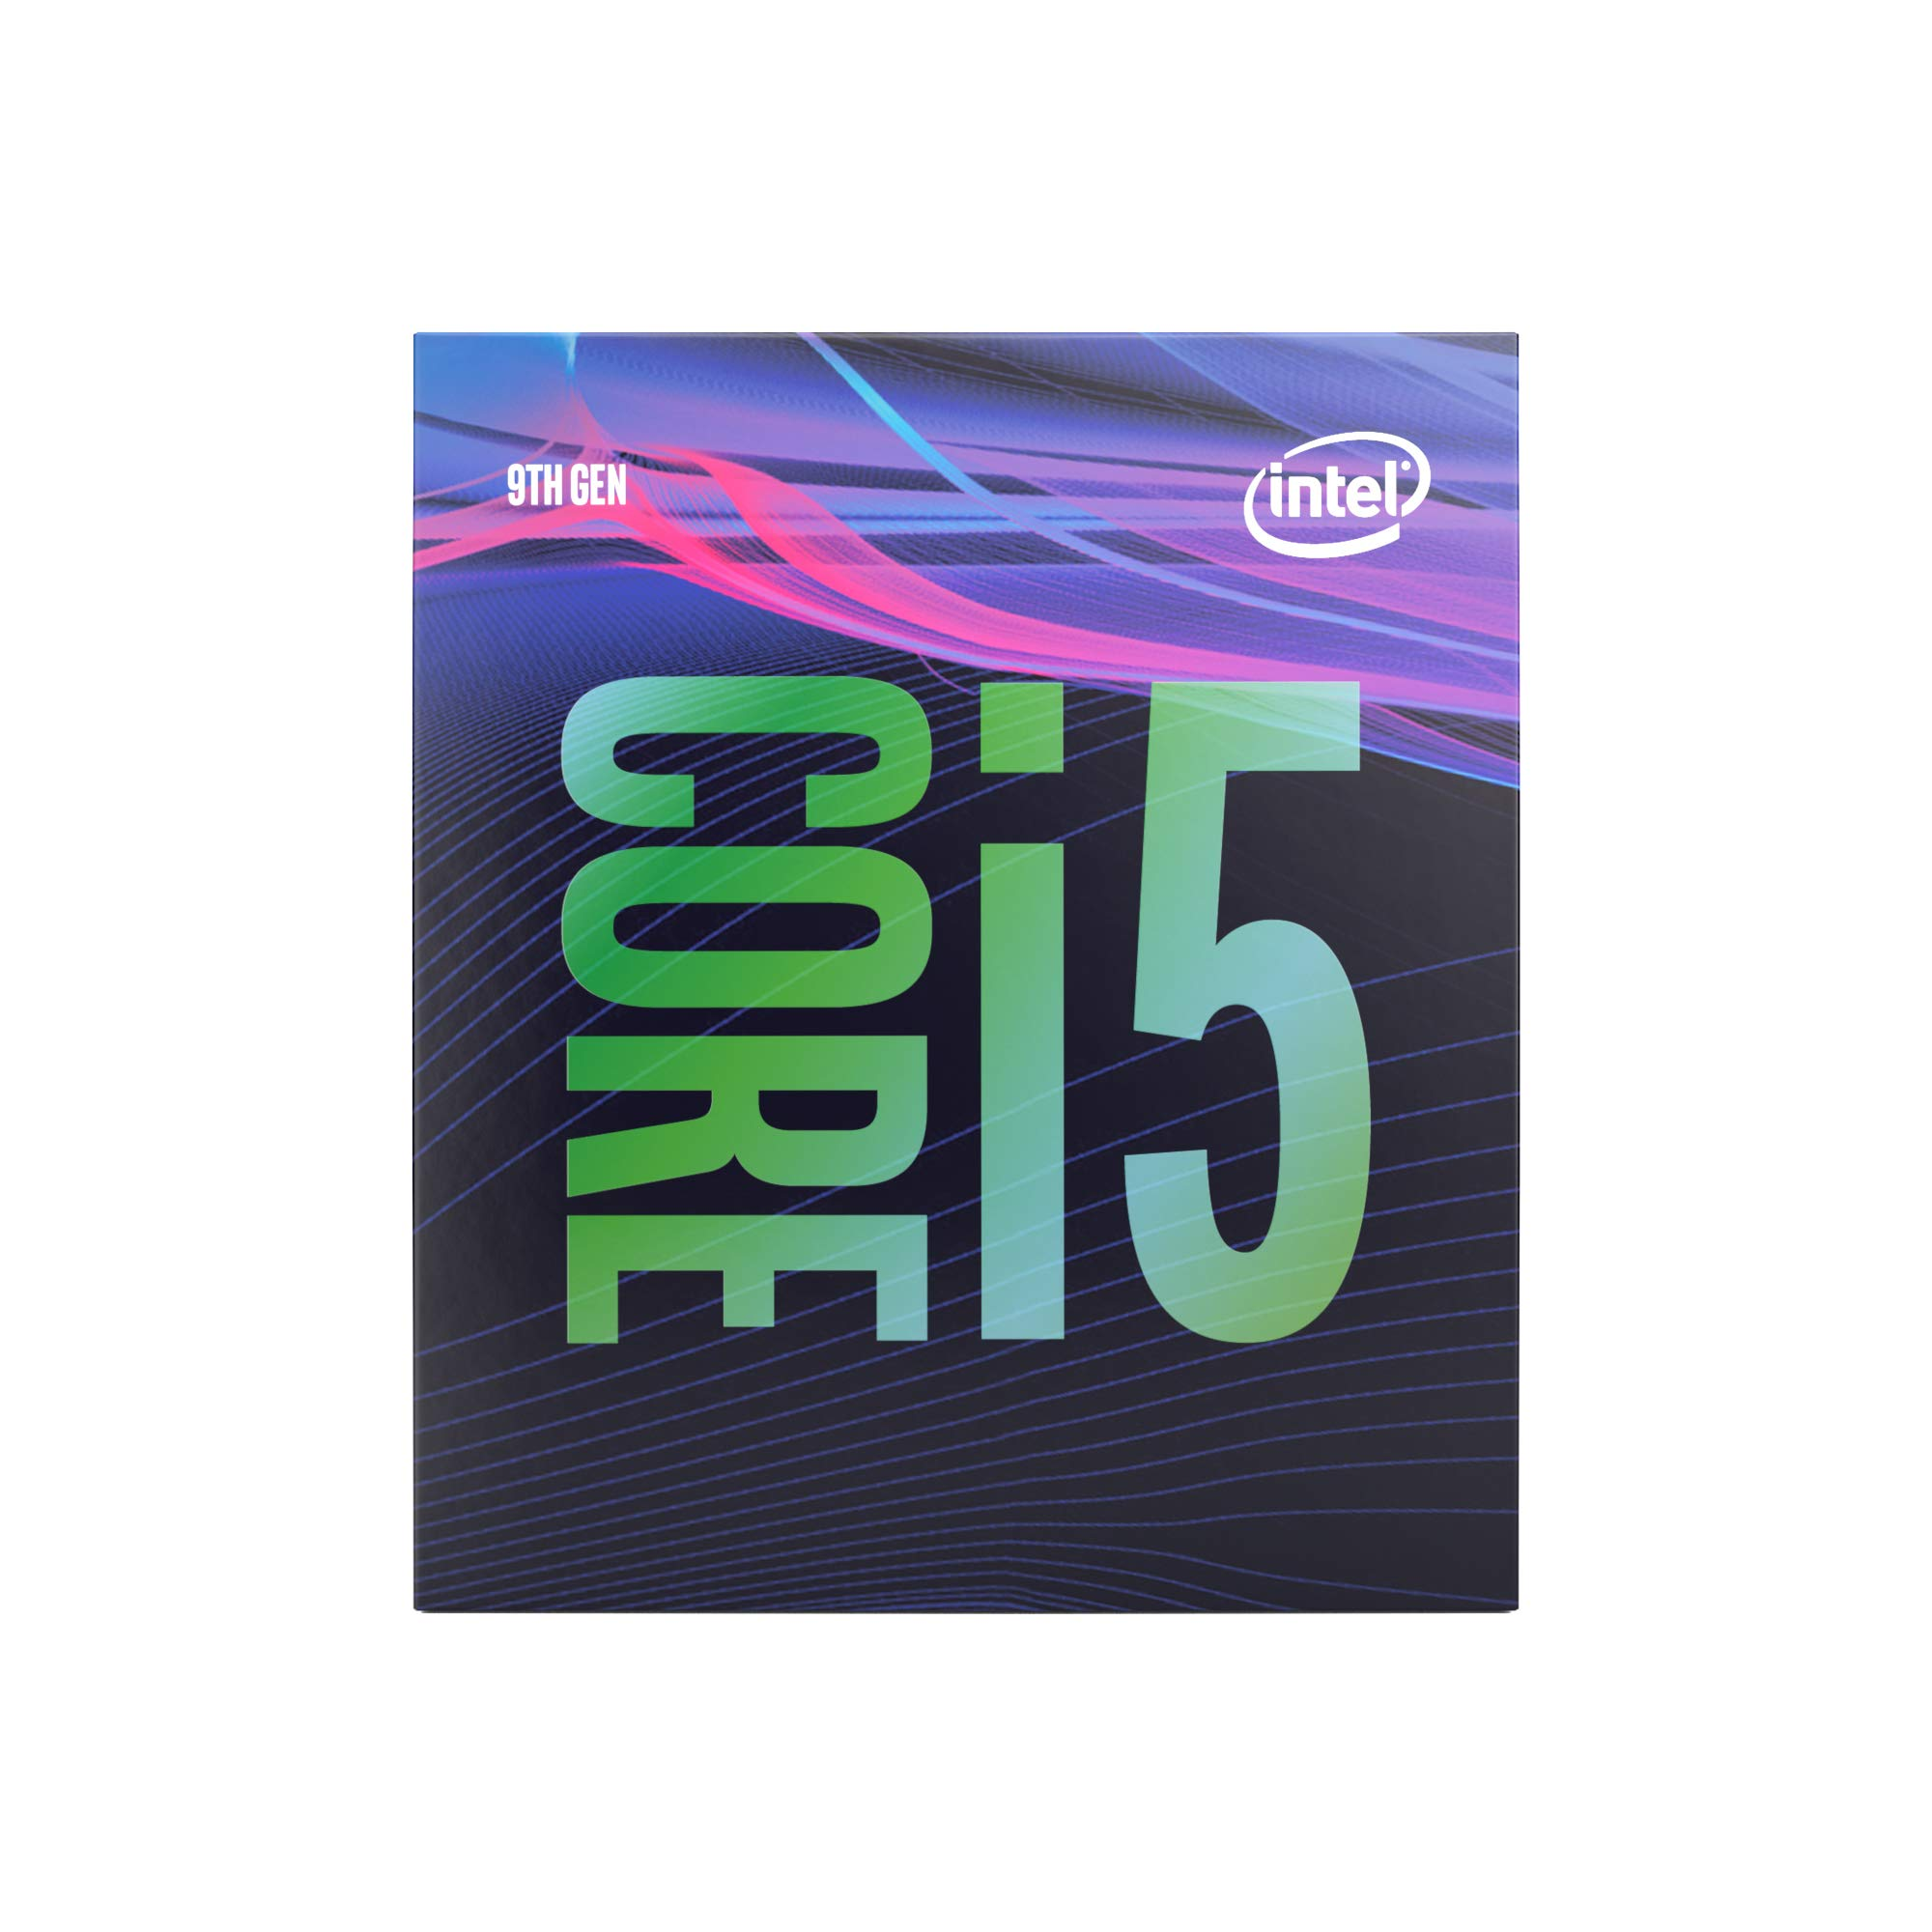 Intel Core i5-9500 6 Cores up to 4.GHz LGA1151 300 Series 65